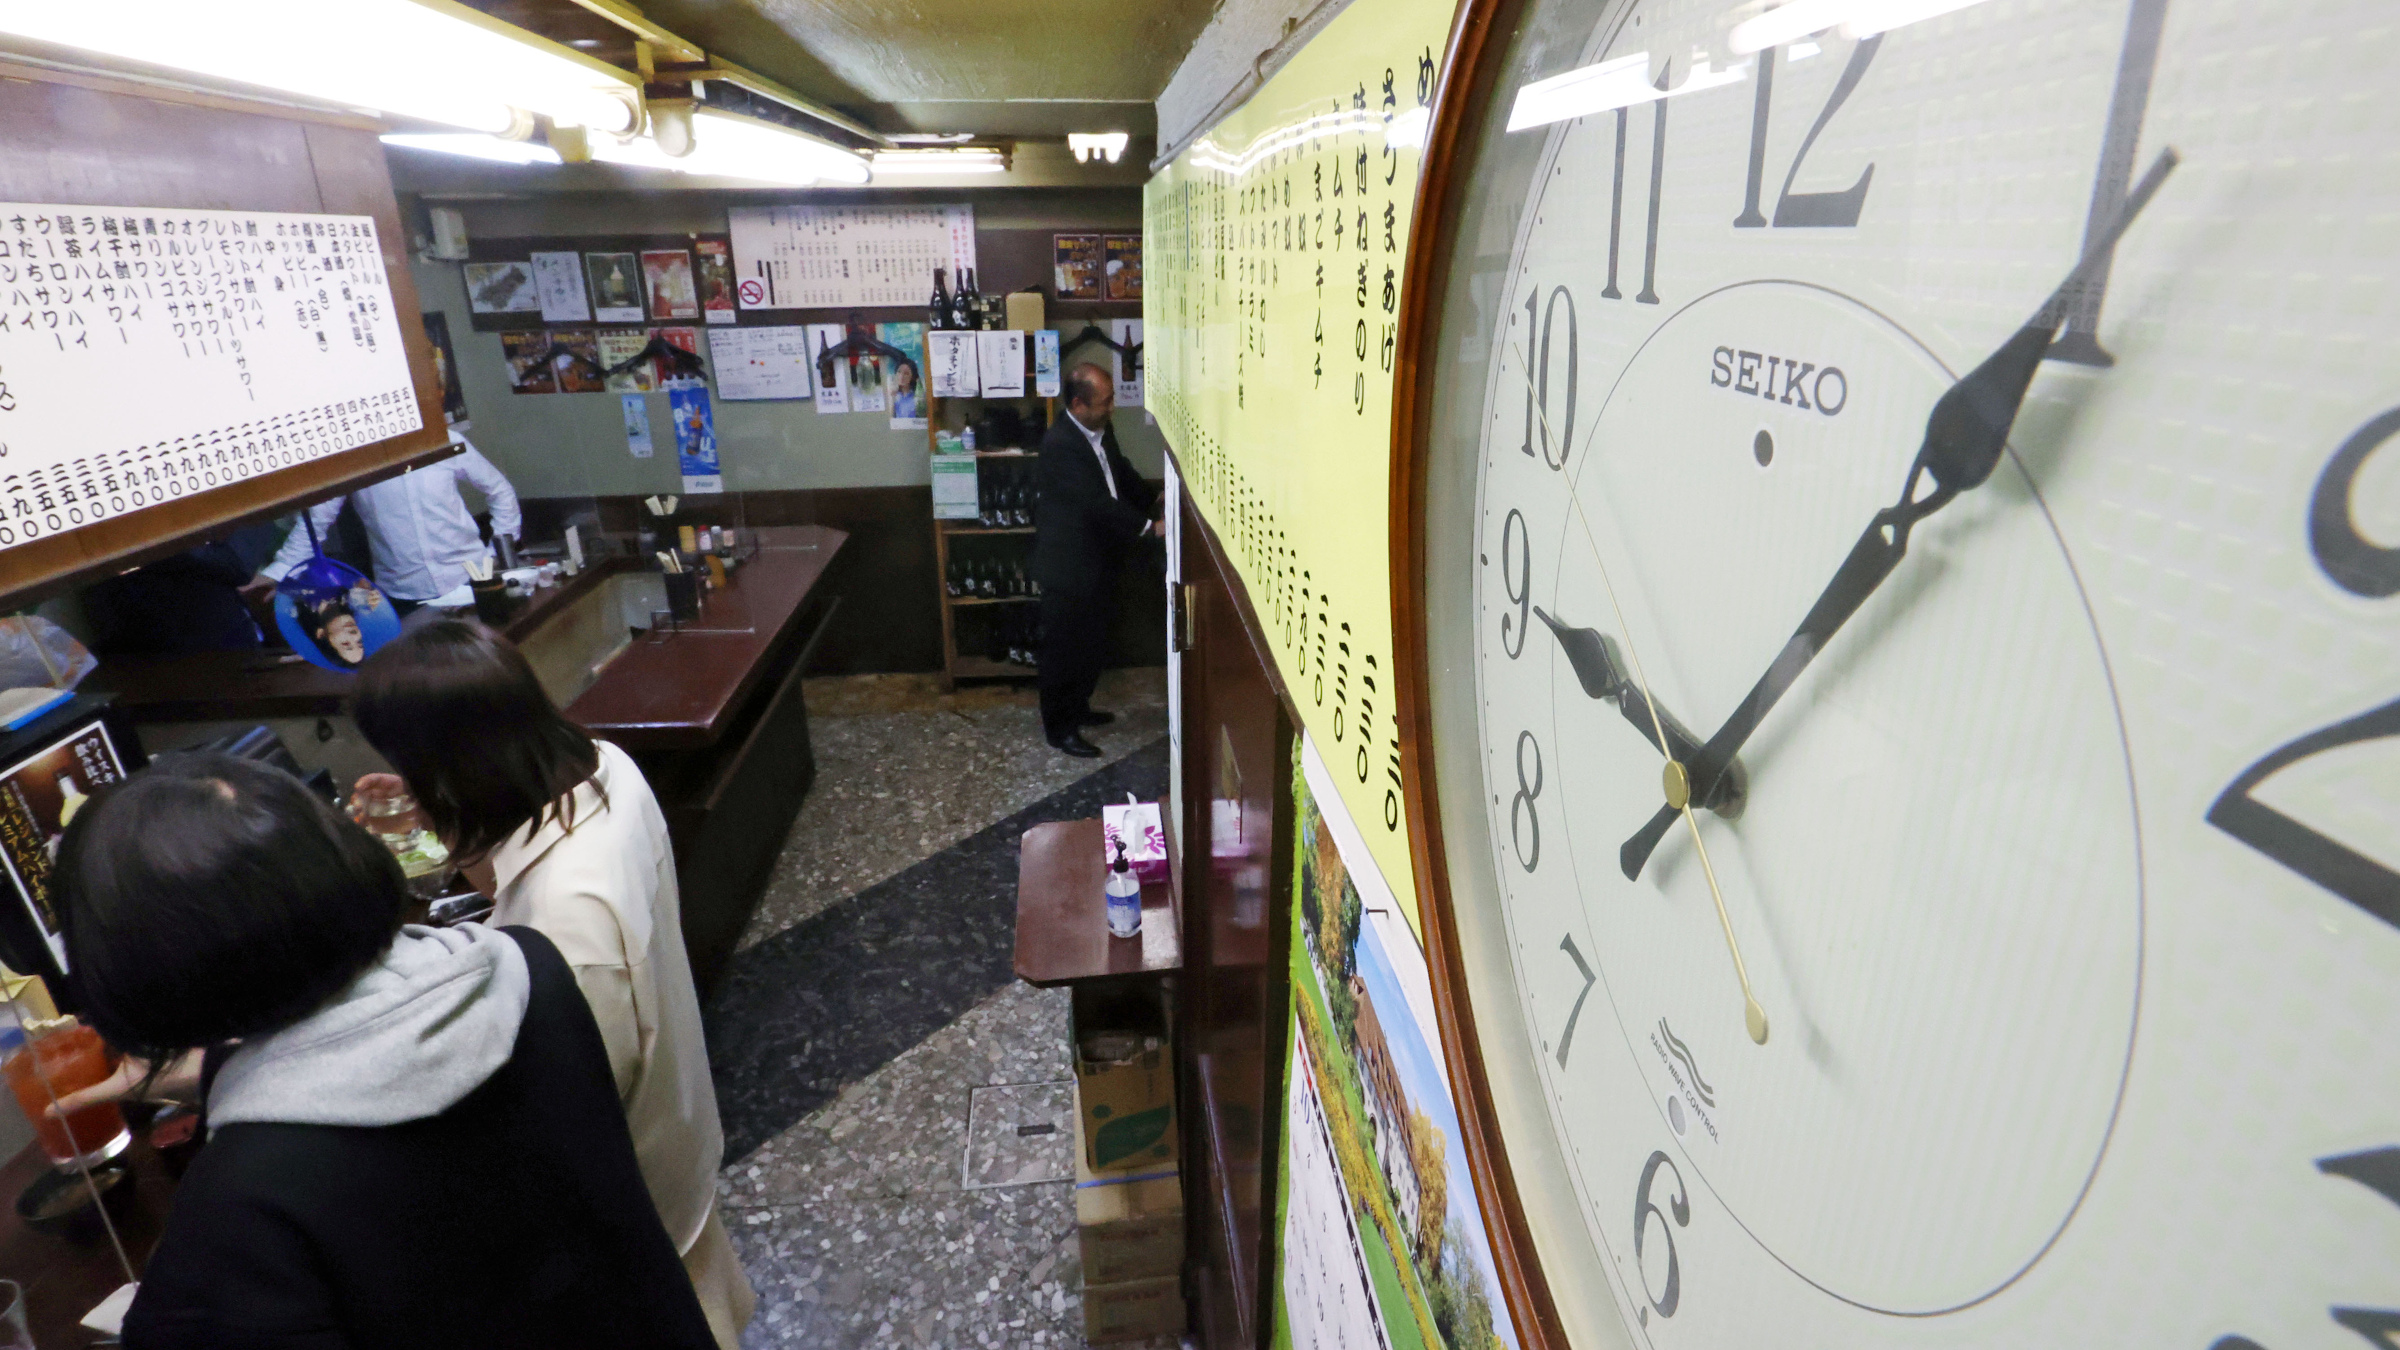 nikkei.com - Staff Writer - Japan's restaurants and hotels welcome life after state of emergency